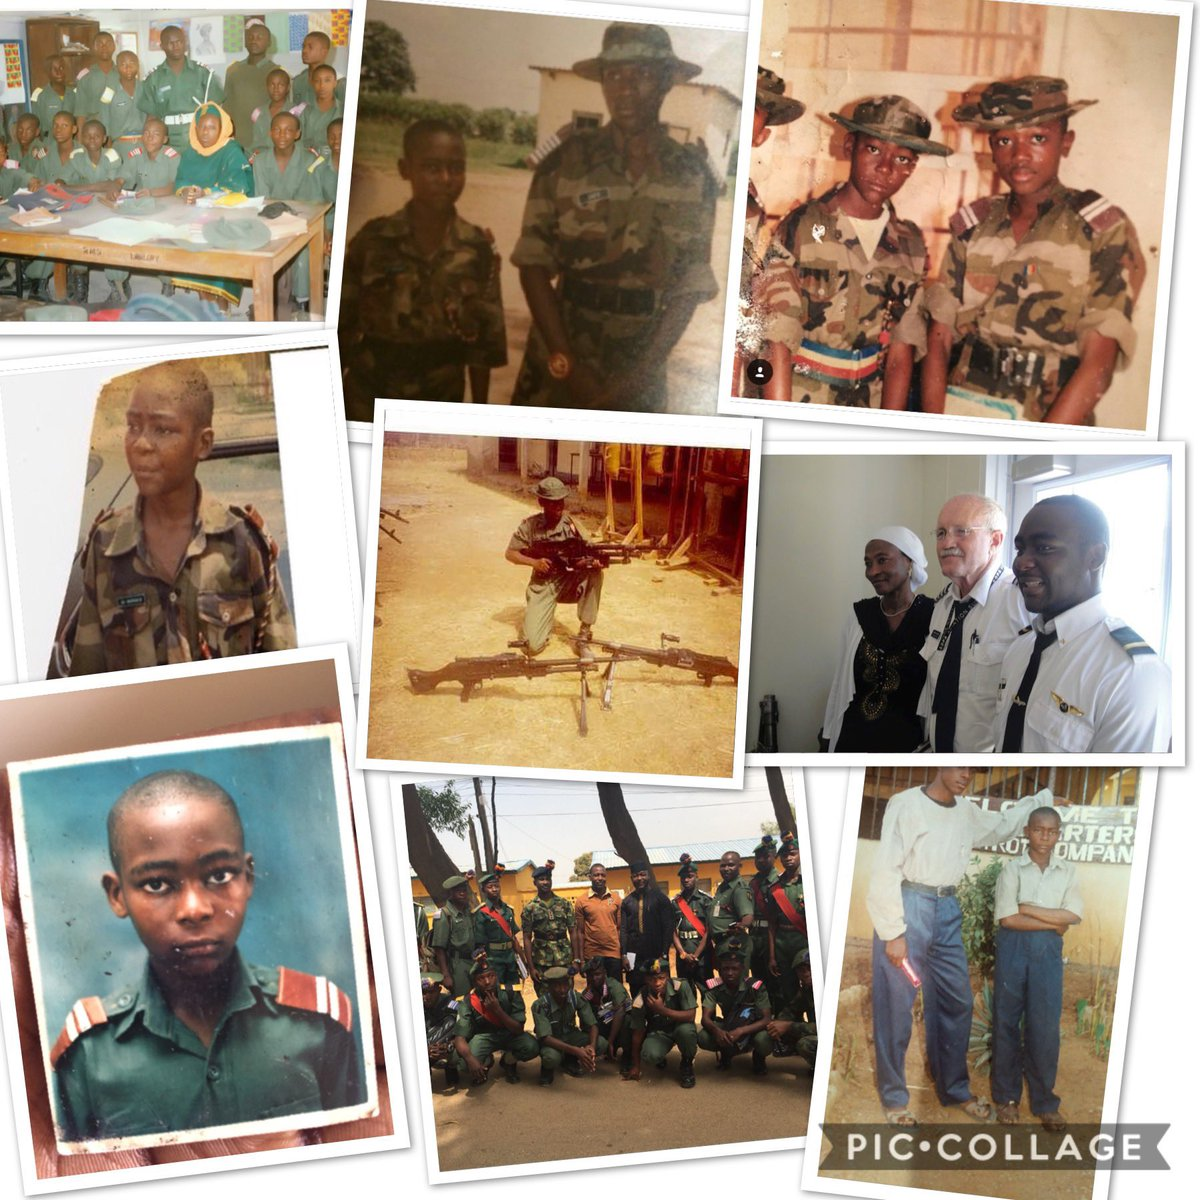 Today makes & marks 10YEARS I started this journey of BEING A PILOT. From Military school, Uni & Piloting school, SHE was there! God bless my mother & make her REST IN PEACE. 4 without her I'll be on the ground with all of U  wondering how planes fly. Dedicate dis 2 U MA <br>http://pic.twitter.com/4fYJJaOQIh